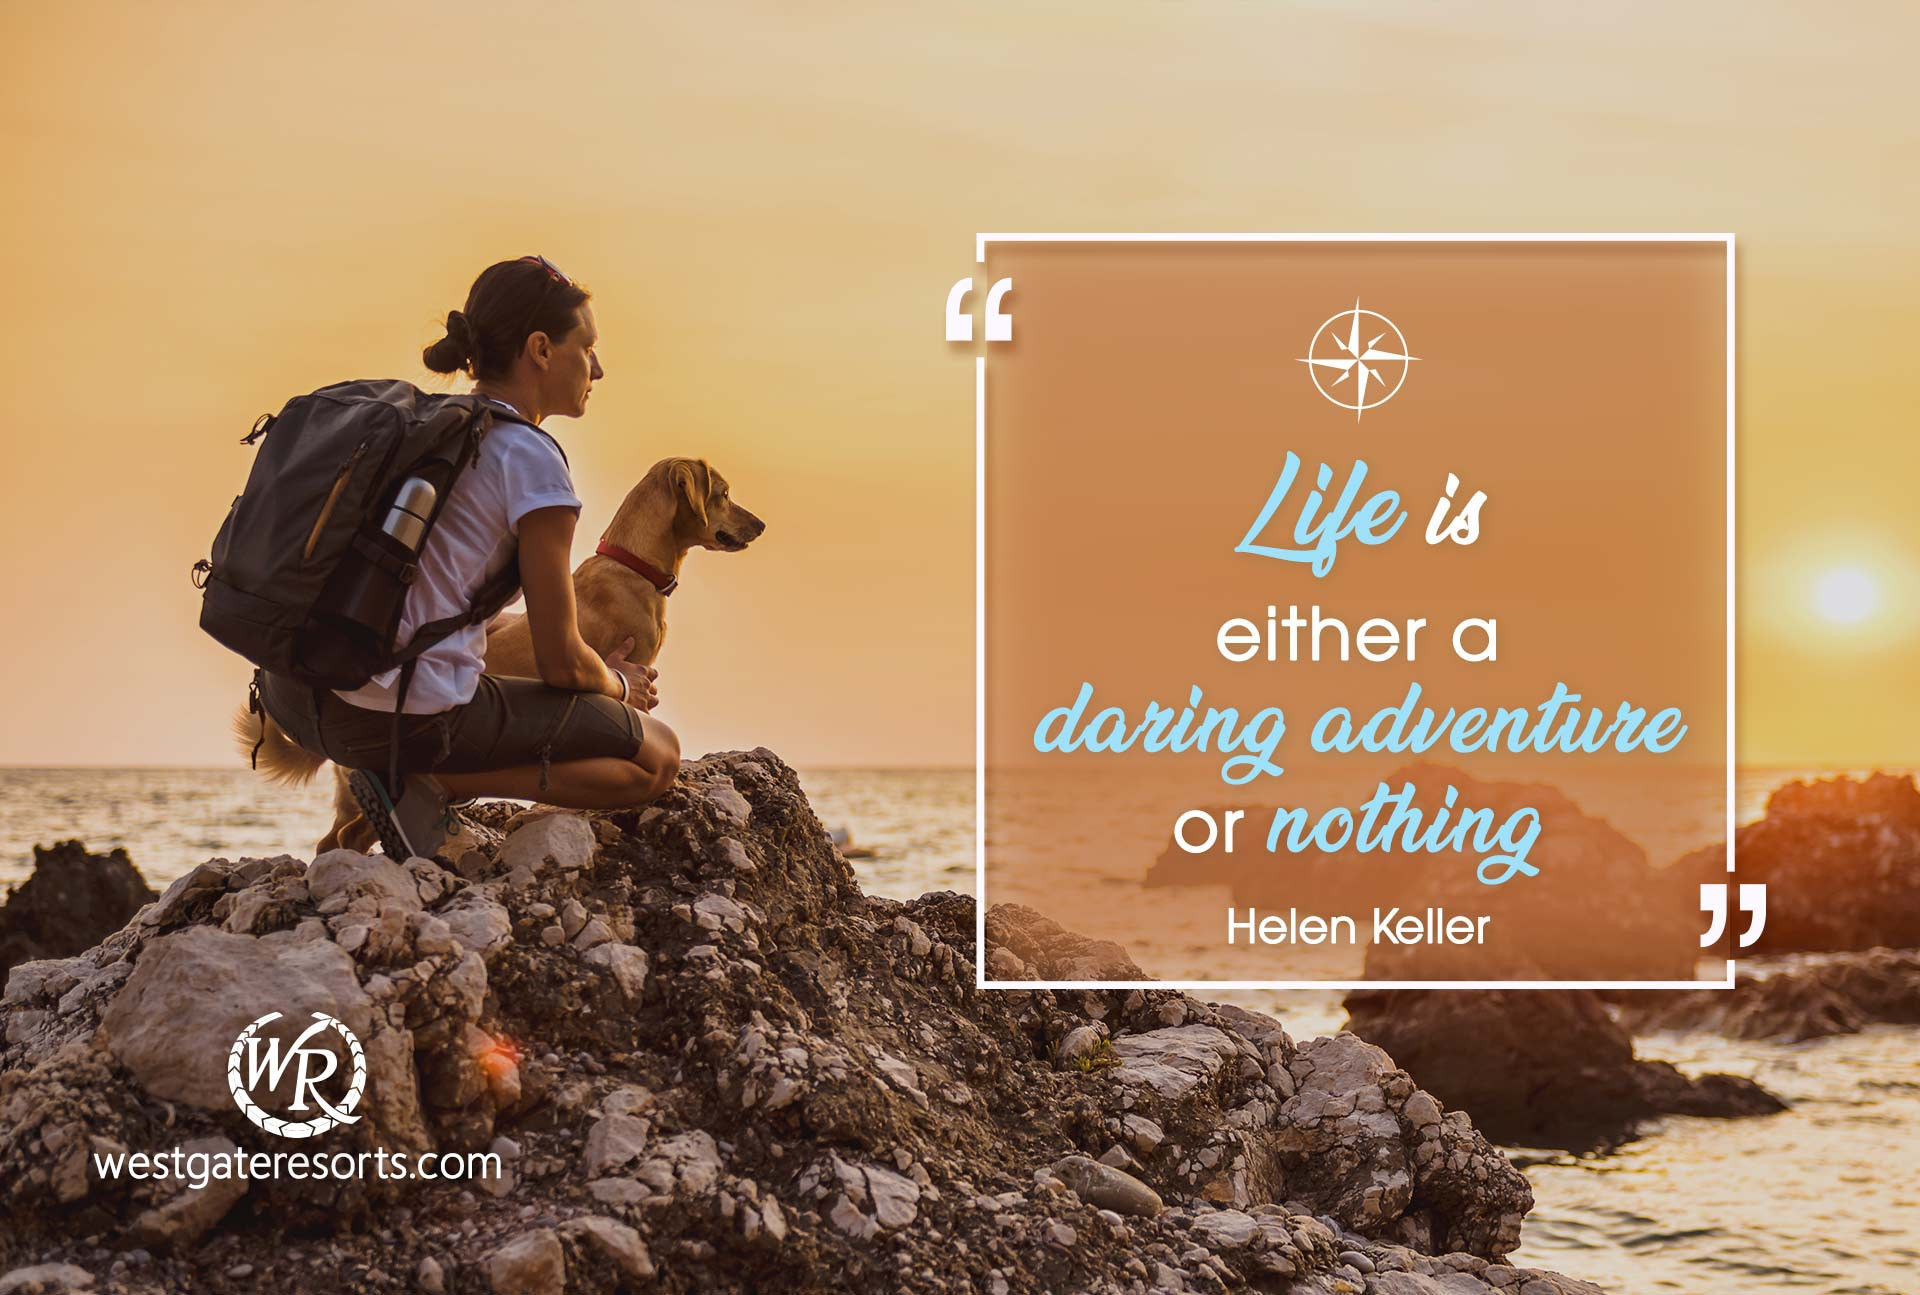 Life is Either a Daring Adventure or Nothing | Helen Keller | Travel Motivational Quotes